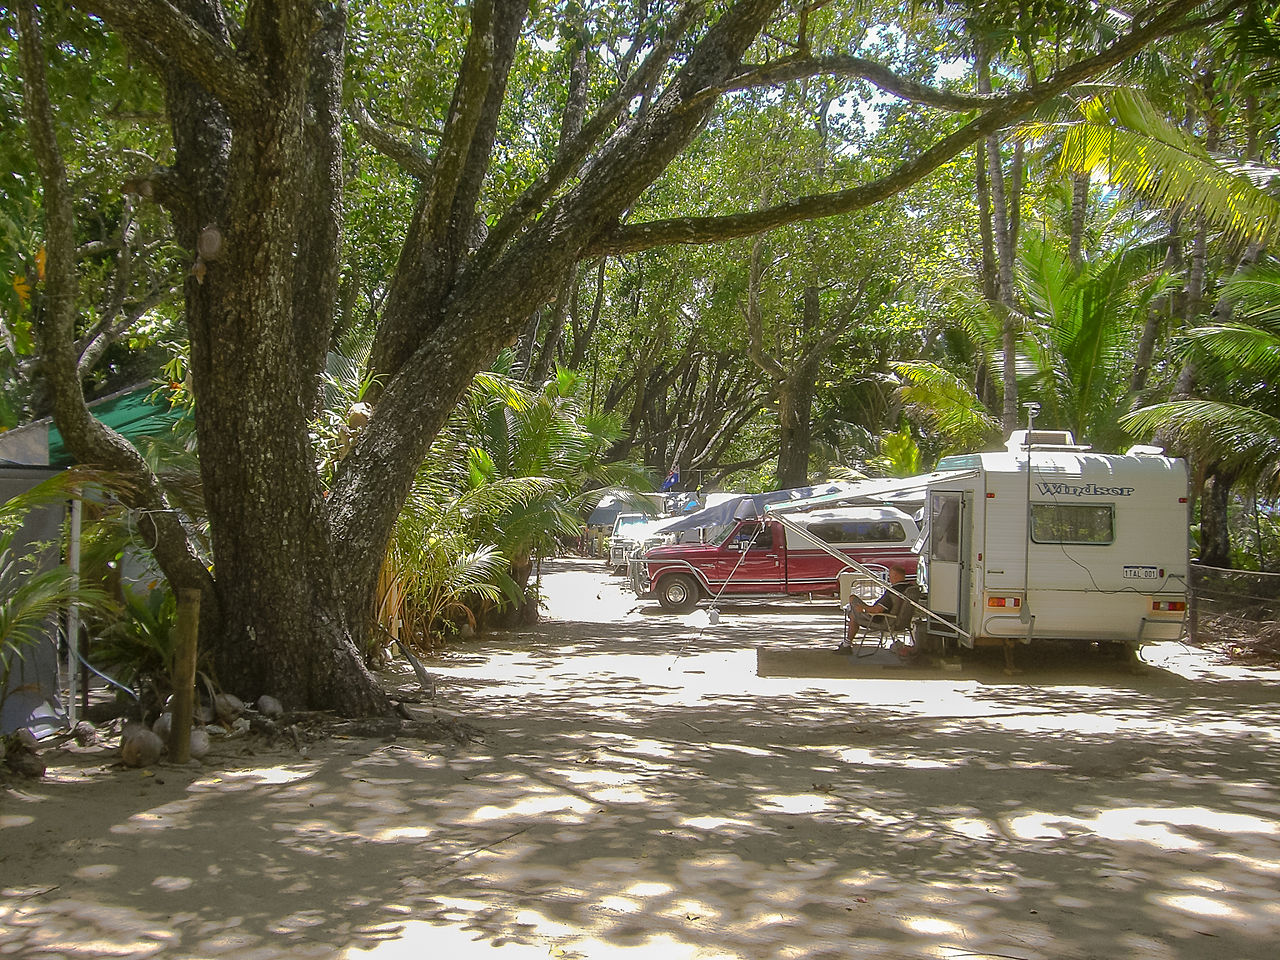 1280px-Camping_Daintree_National_Parc_Nationalpark_-22533827153-1ee7aa.jpg